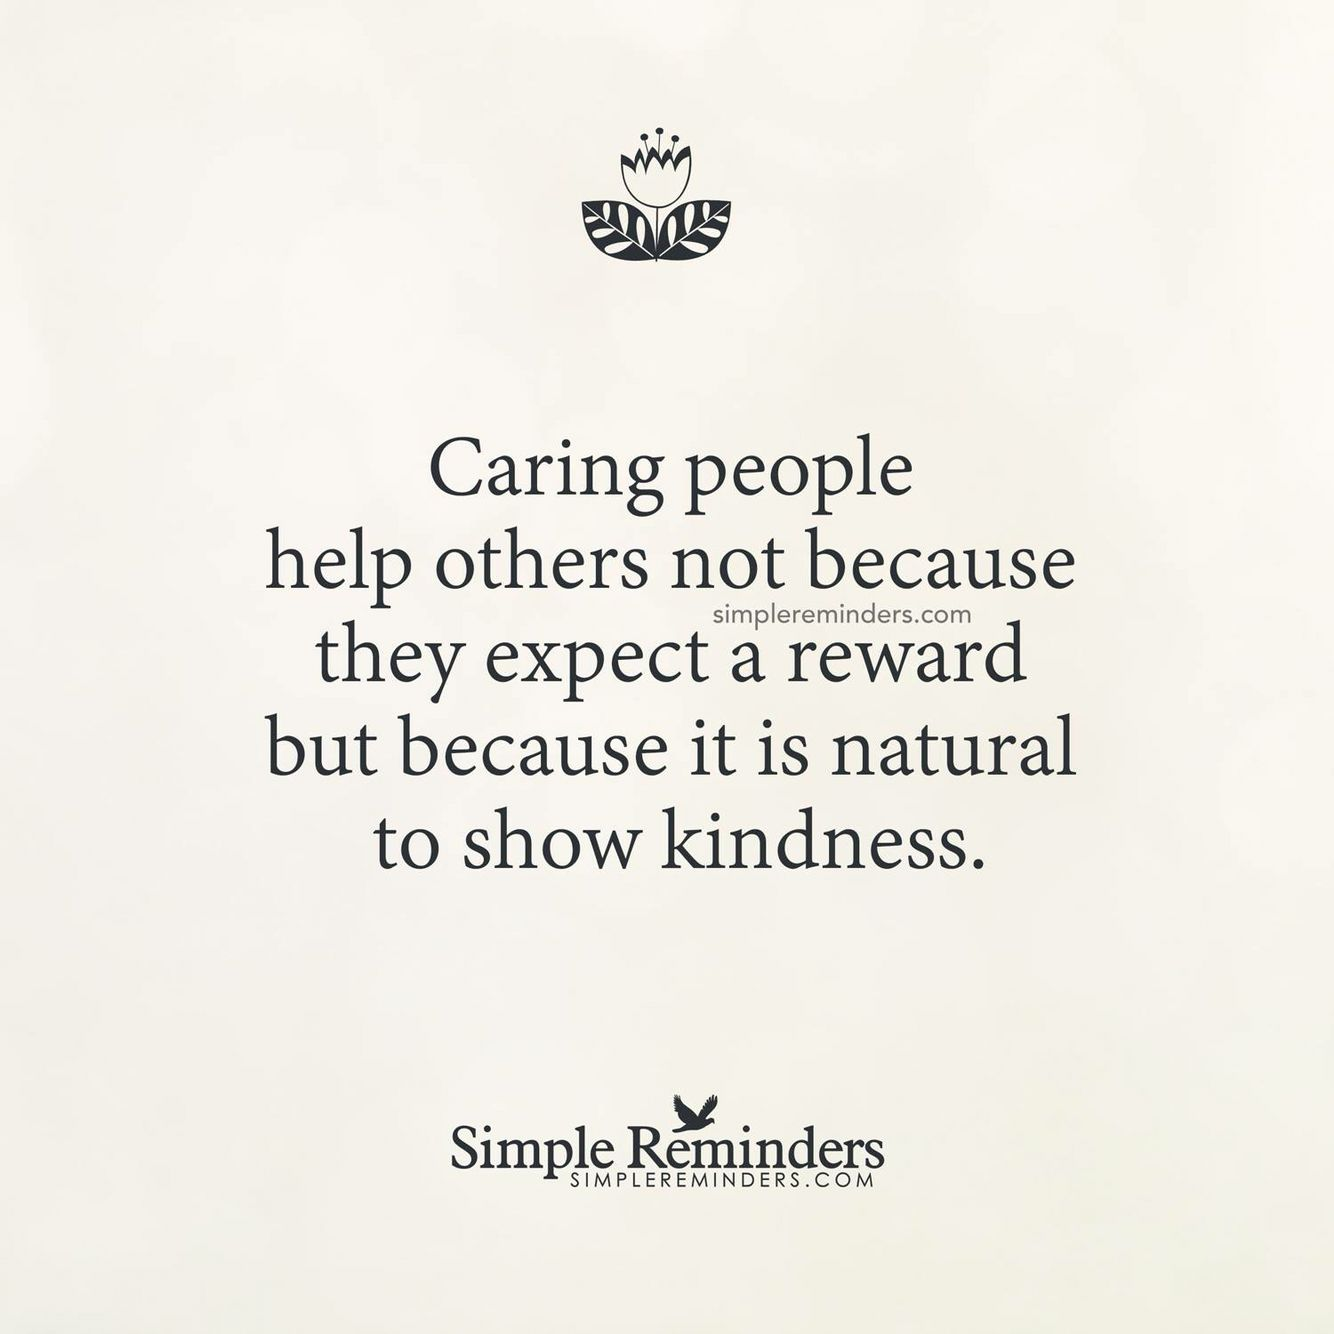 Quotes About Caring For Others Caring People Help Others Not Because They Expect A Reward But